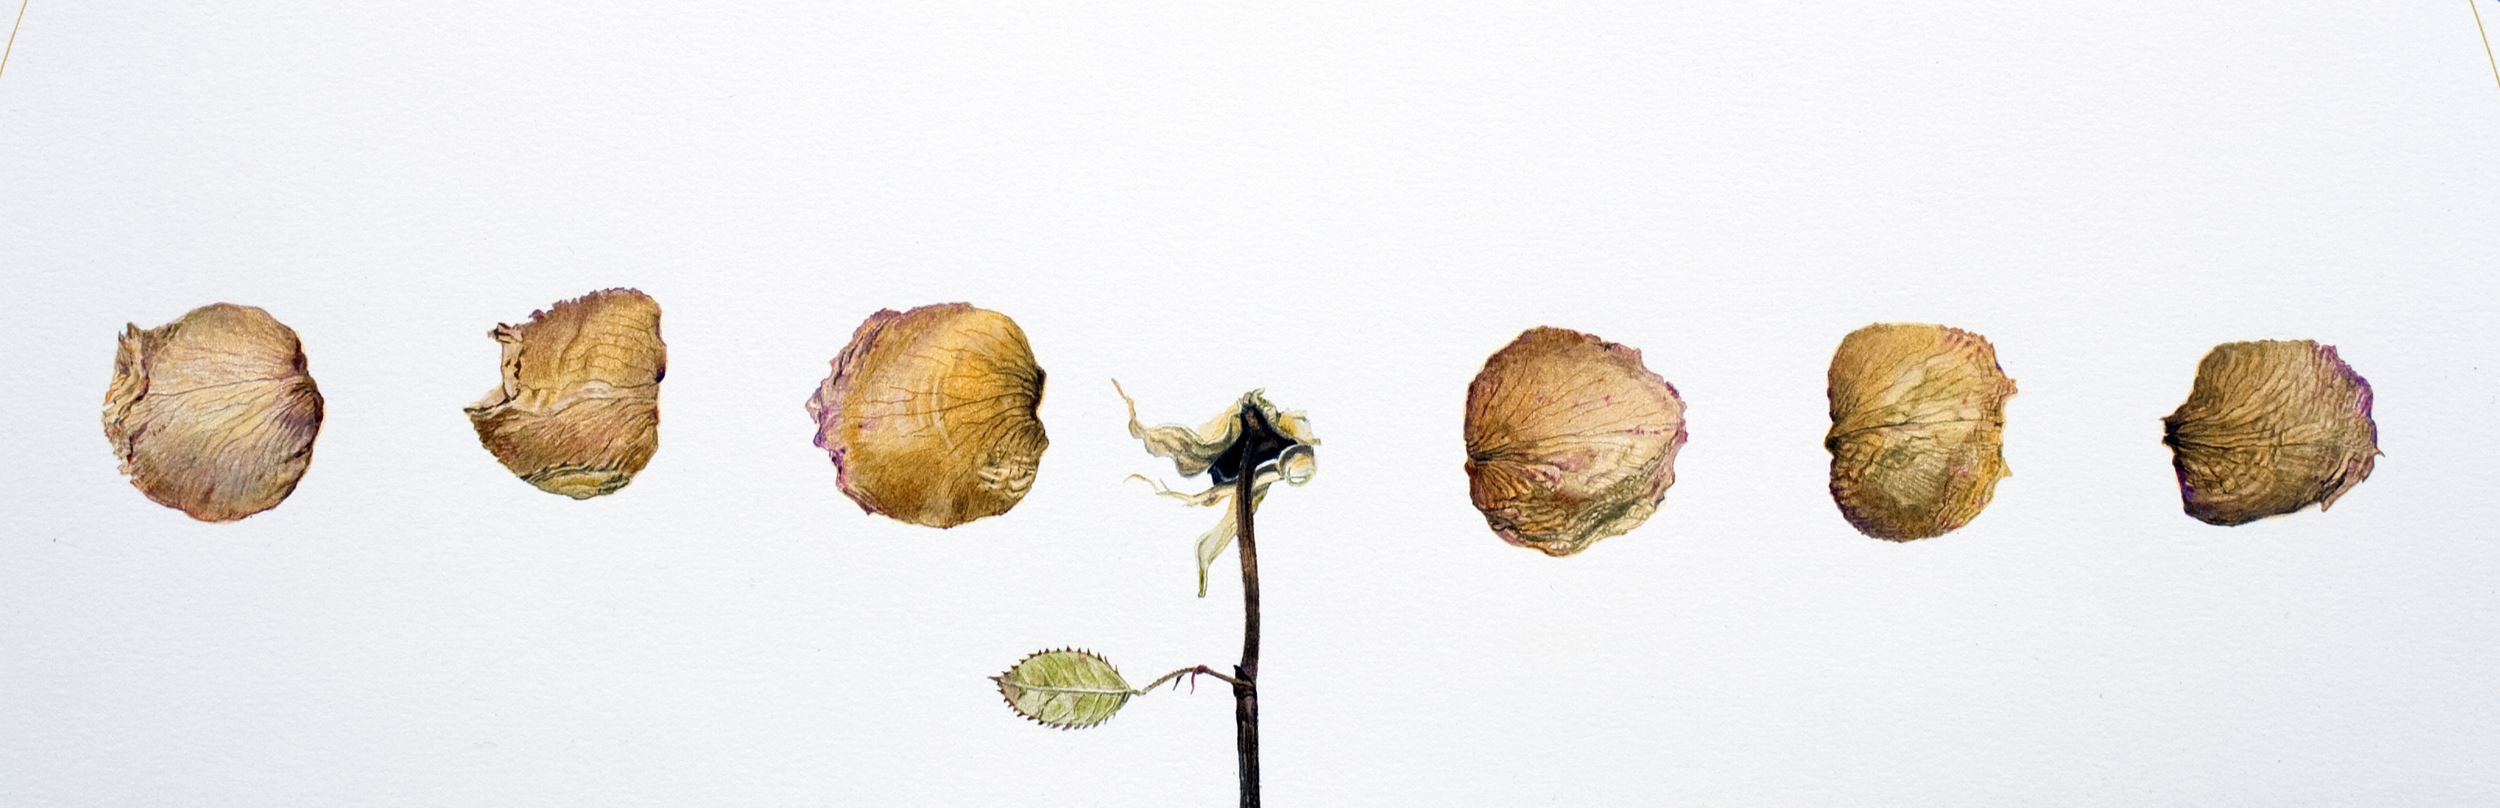 Rose, Dried and Disassembled